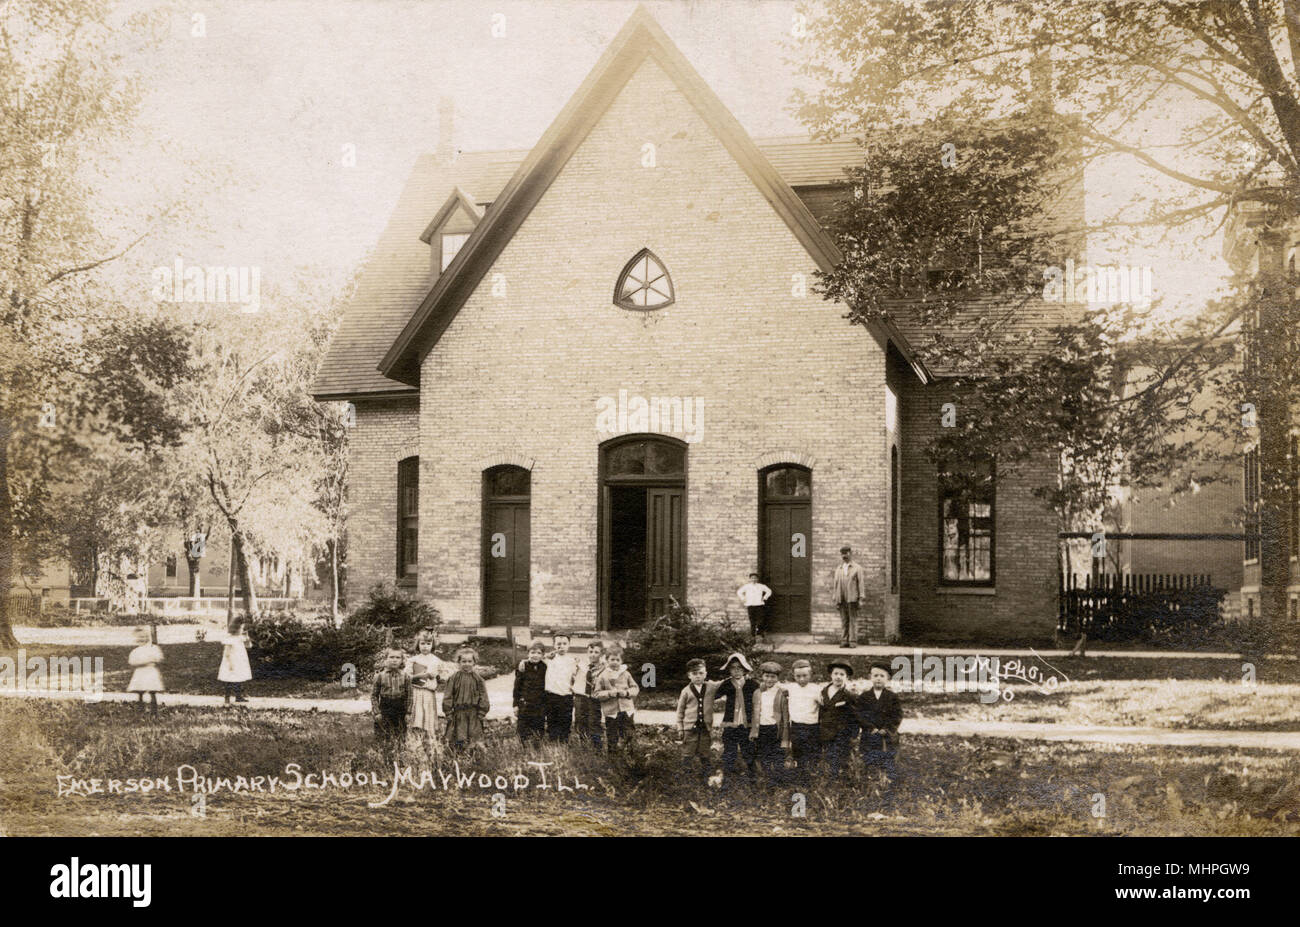 Emerson Primary School, Maywood, Illinois, USA, with children posing for their photo.       Date: circa 1910 - Stock Image